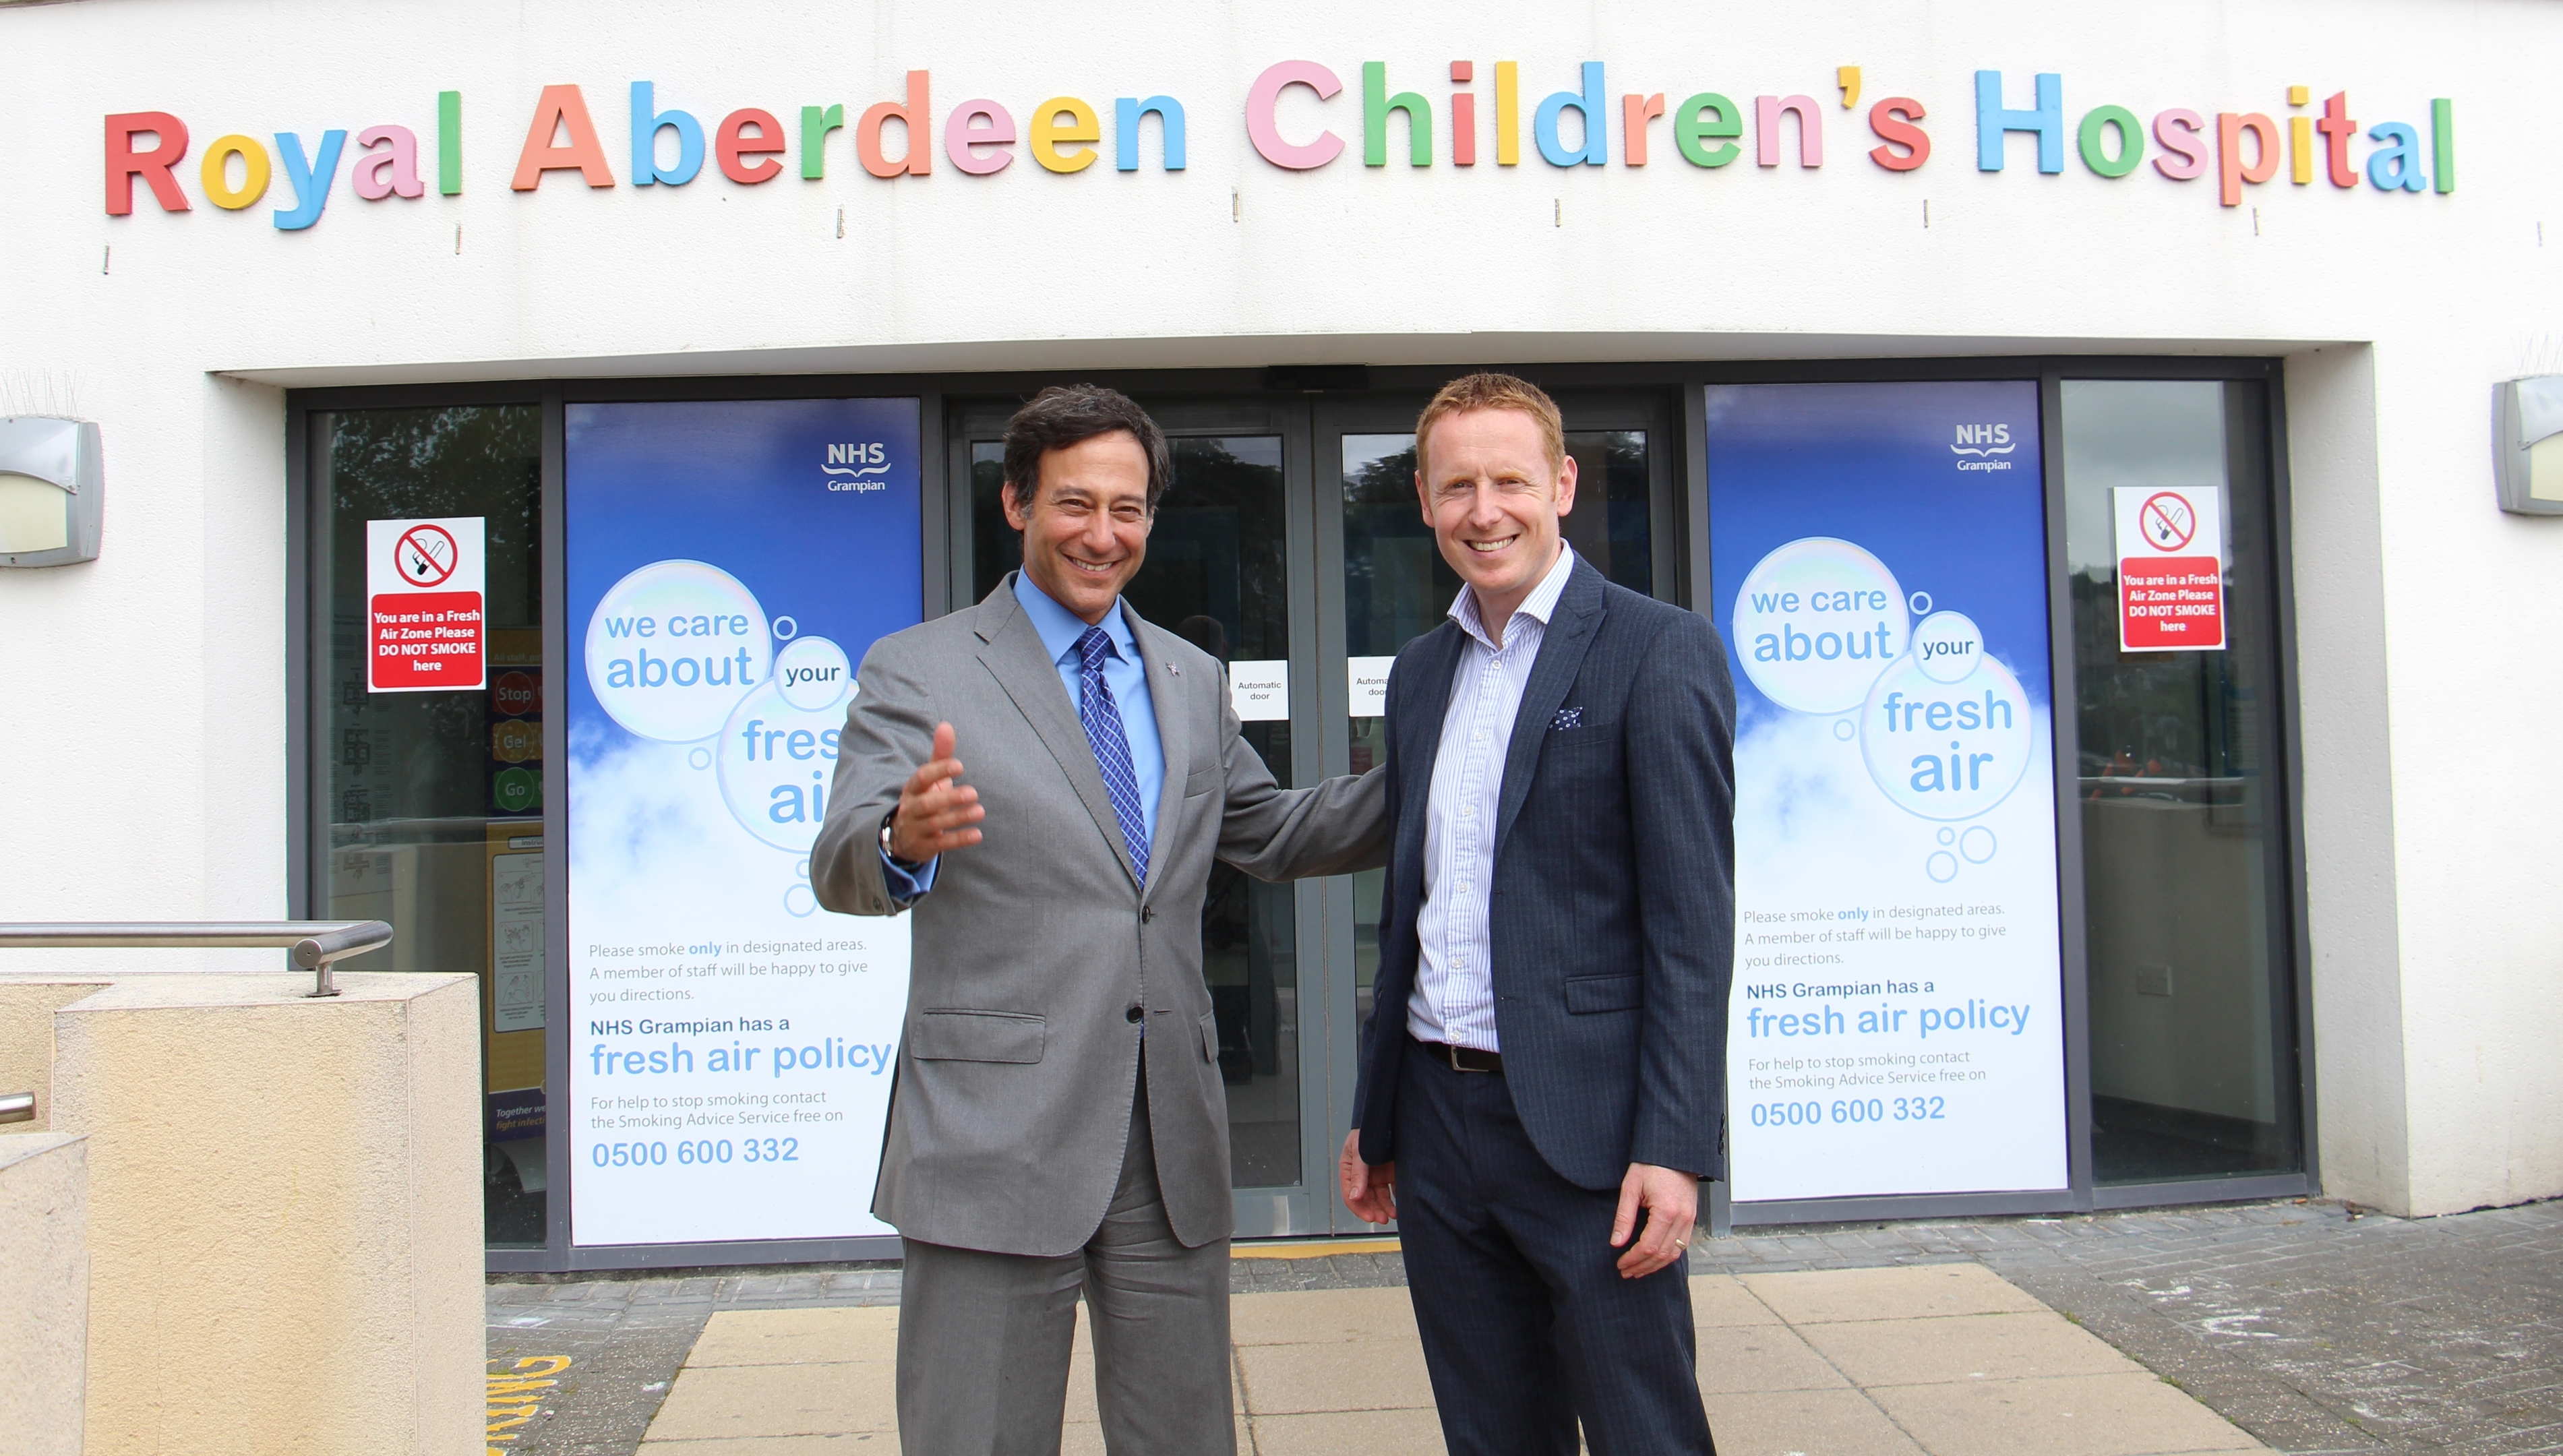 Bristow Group's President, Jonathan Baliff and David Cunningham, Chief Executive of The ARCHIE Foundation